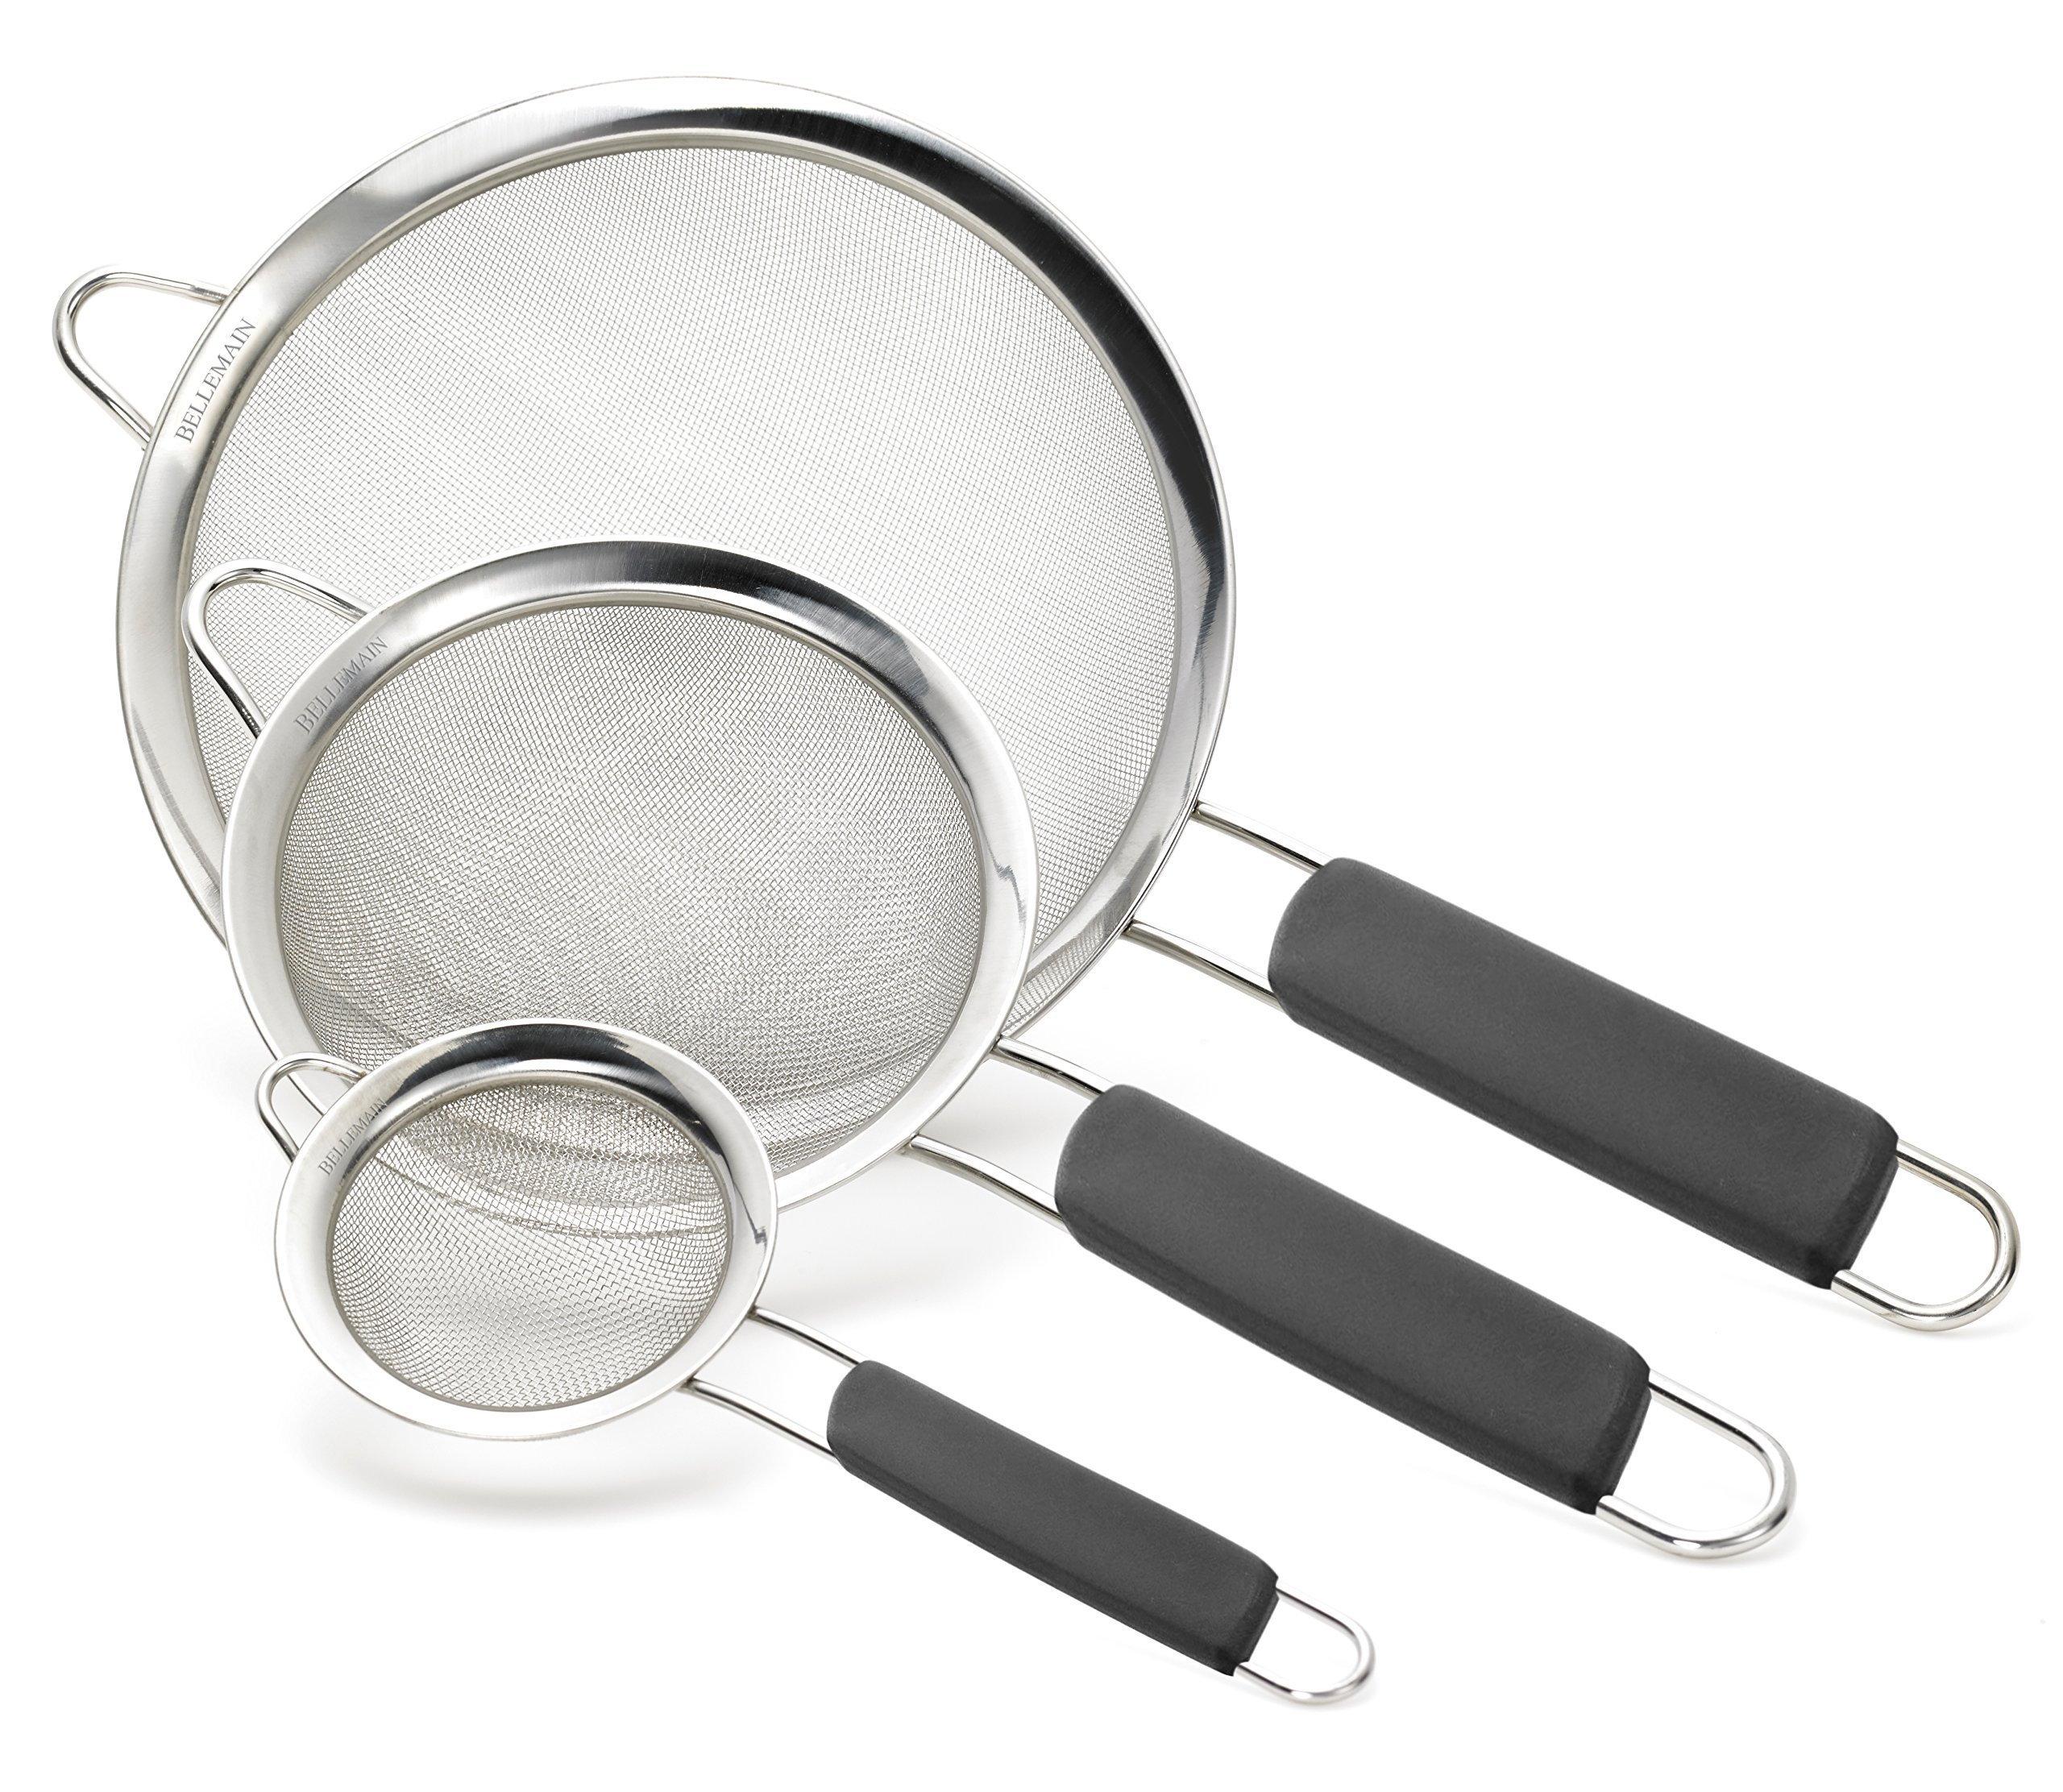 Bellemain Stainless Steel Fine Mesh Strainers, Set of 3 Graduated Sizes with Comfortable Non Slip Handles by Bellemain